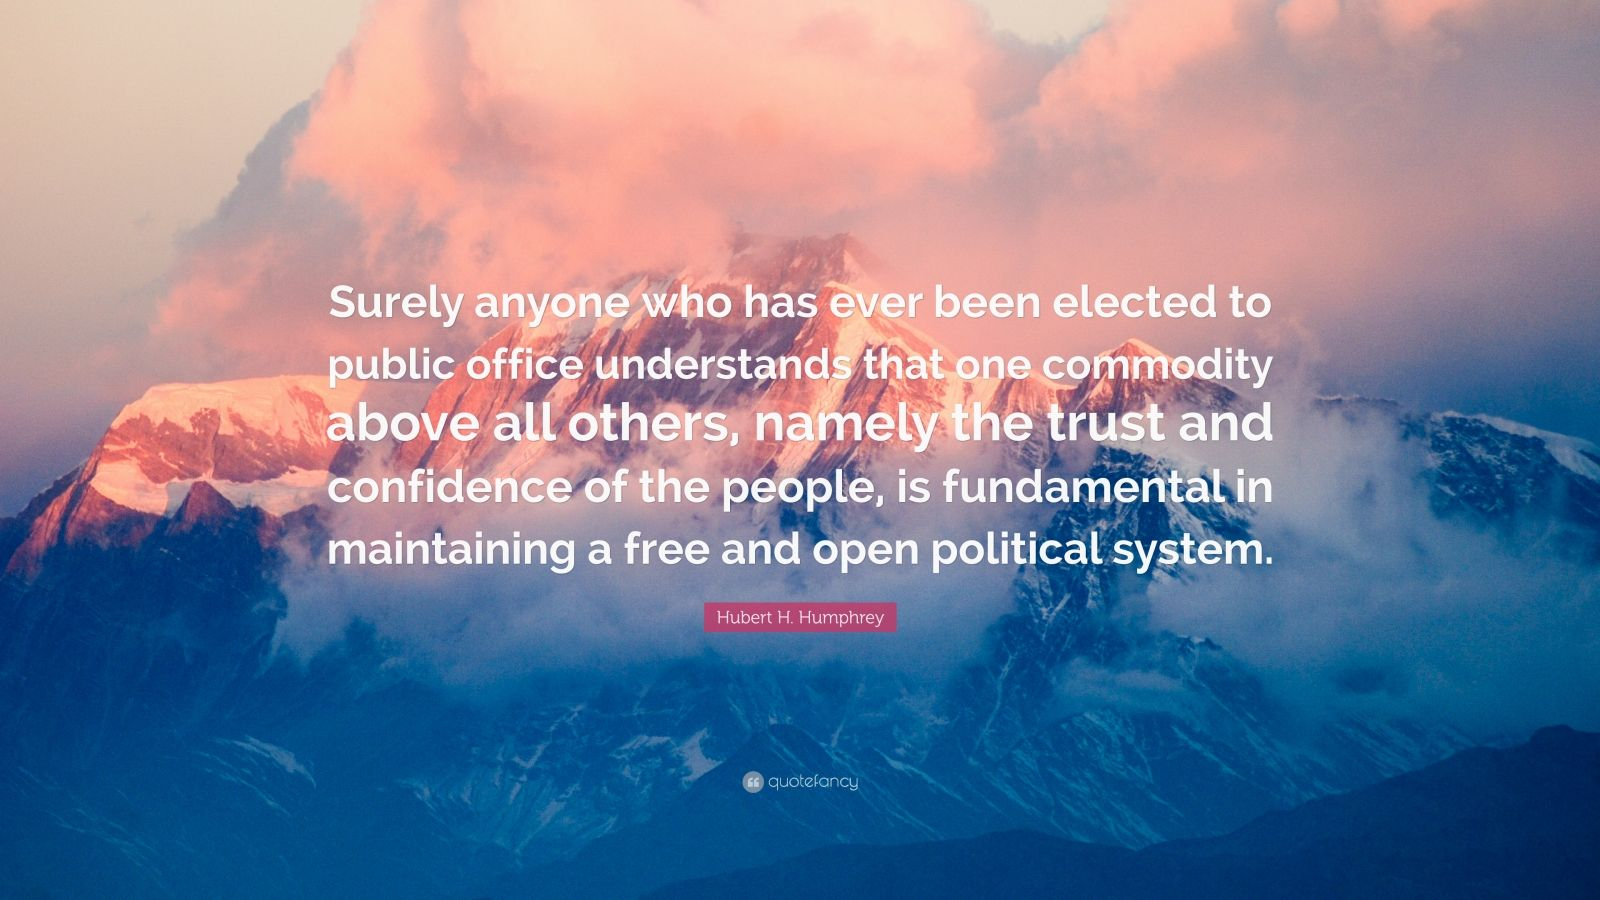 "Hubert H. Humphrey Quote: ""Surely anyone who has ever been elected to public office understands that one commodity above all others, namely the trust and confidence of the people, is fundamental in maintaining a free and open political system."""